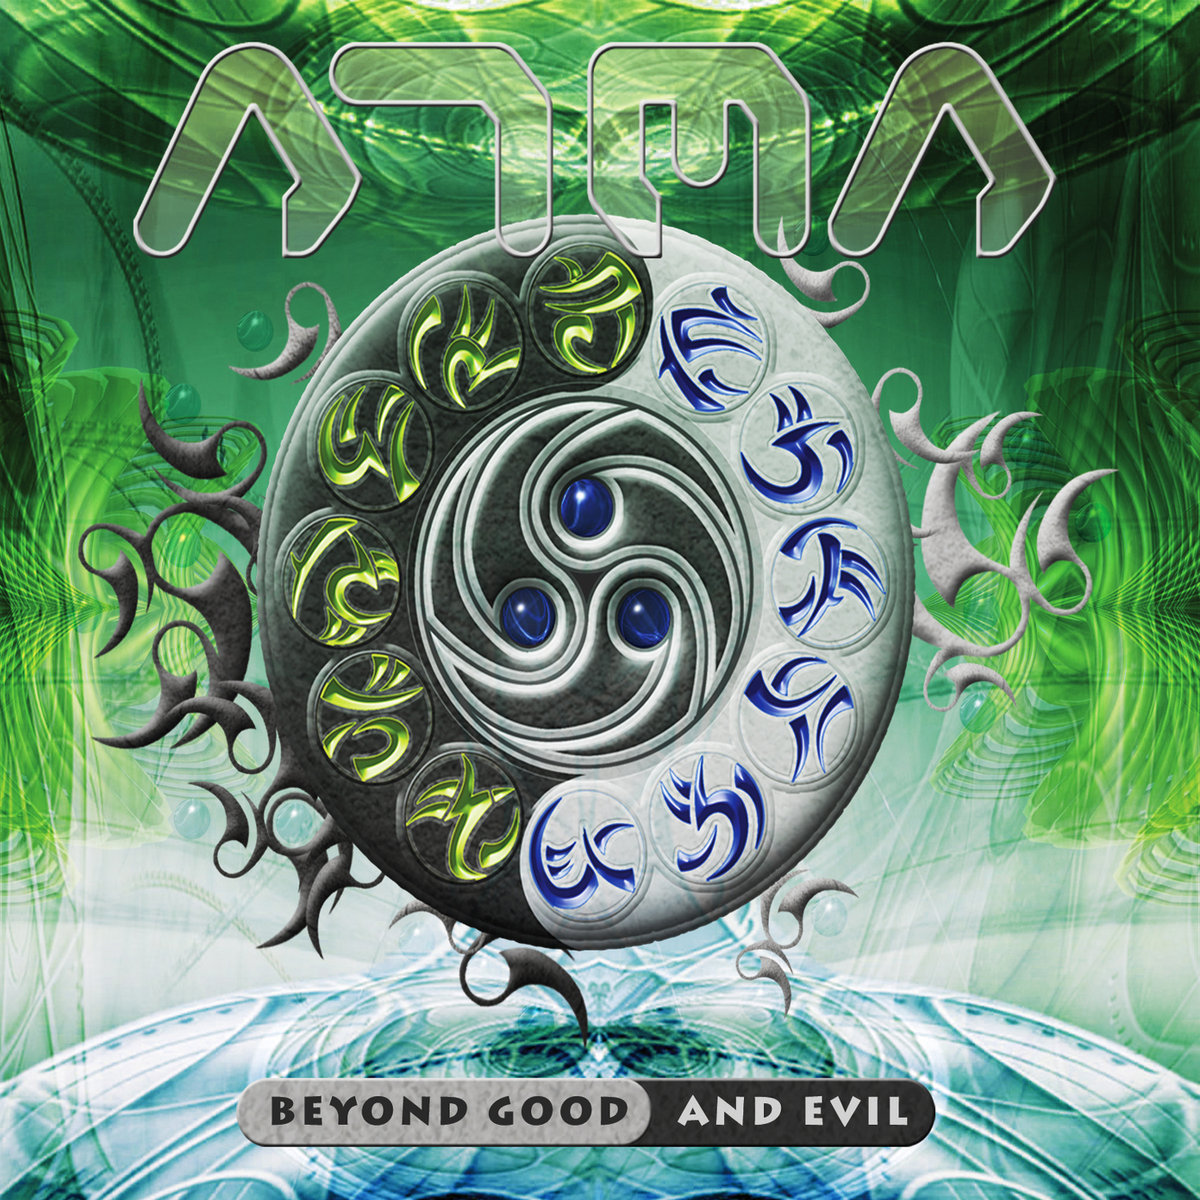 Atma - There Is Still Hope @ 'Beyond Good and Evil' album (electronic, goa)